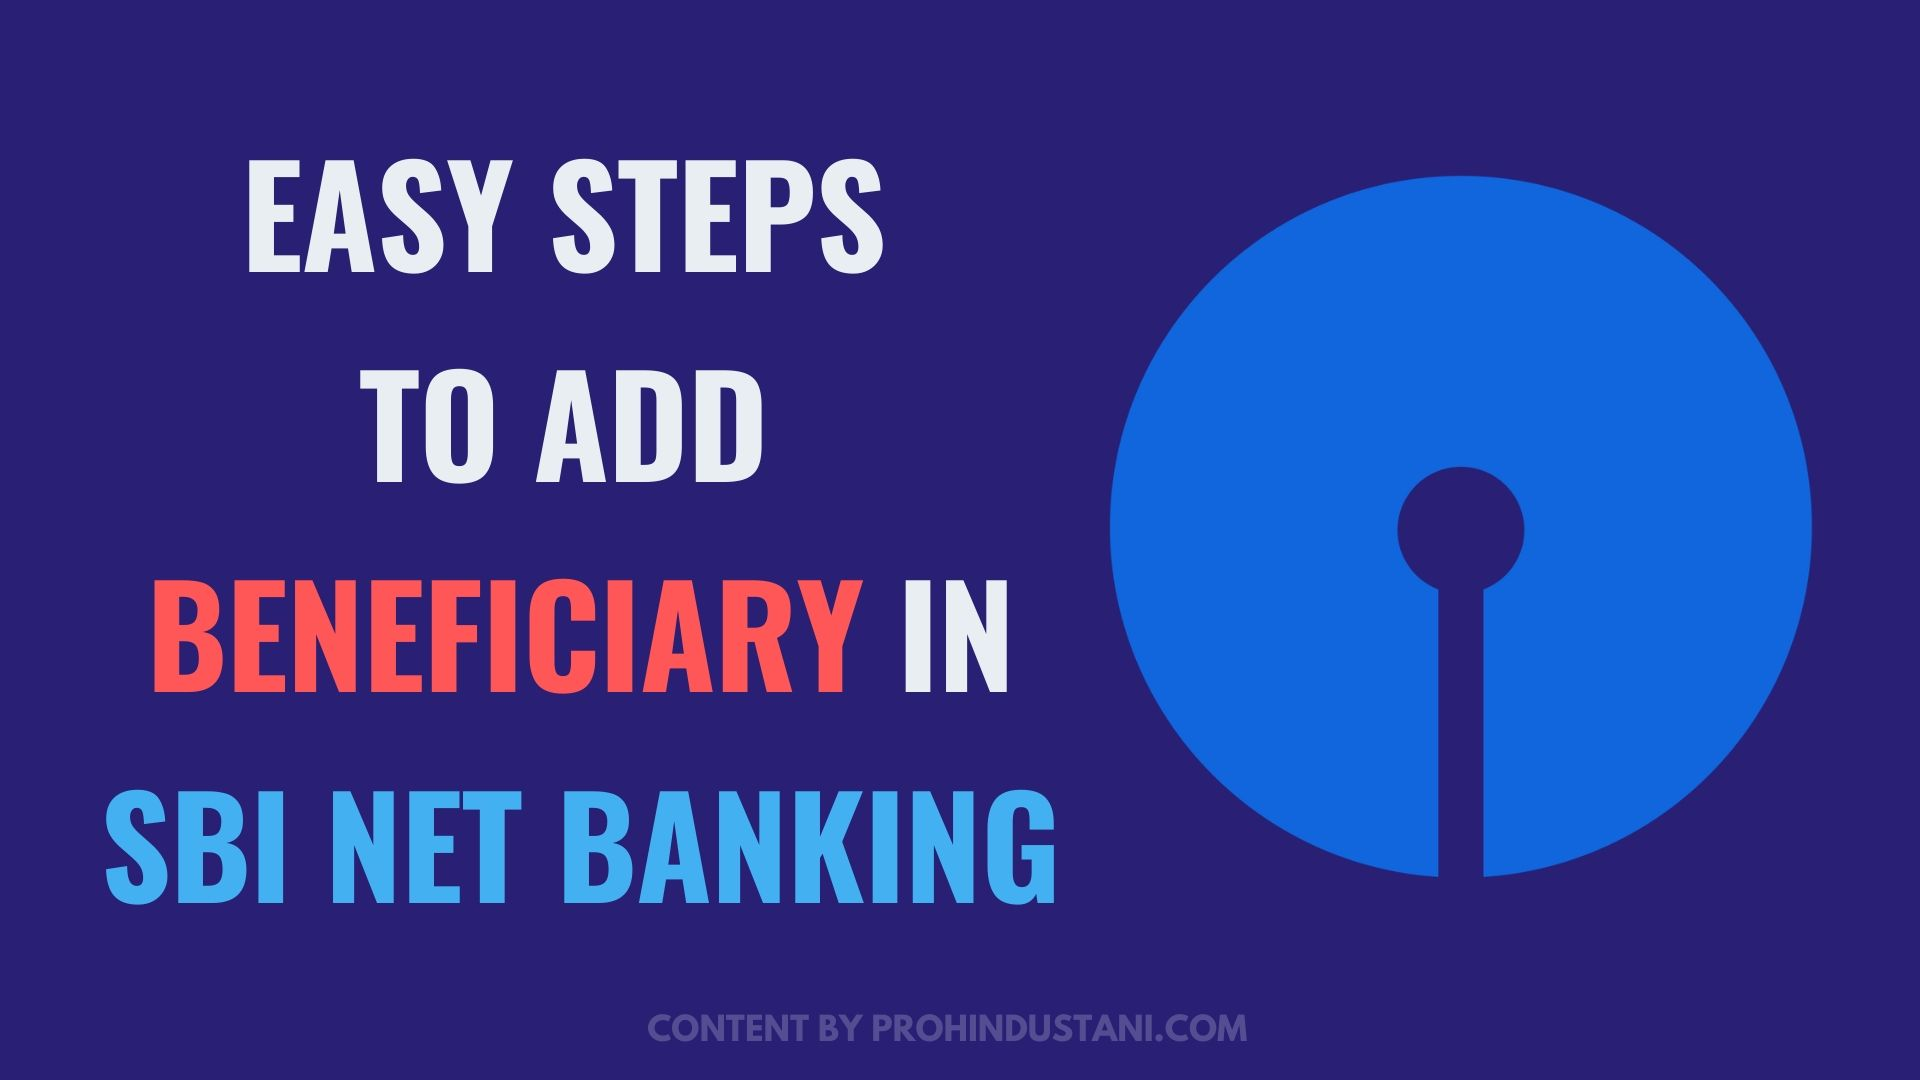 easy steps to add beneficiary in SBI net banking